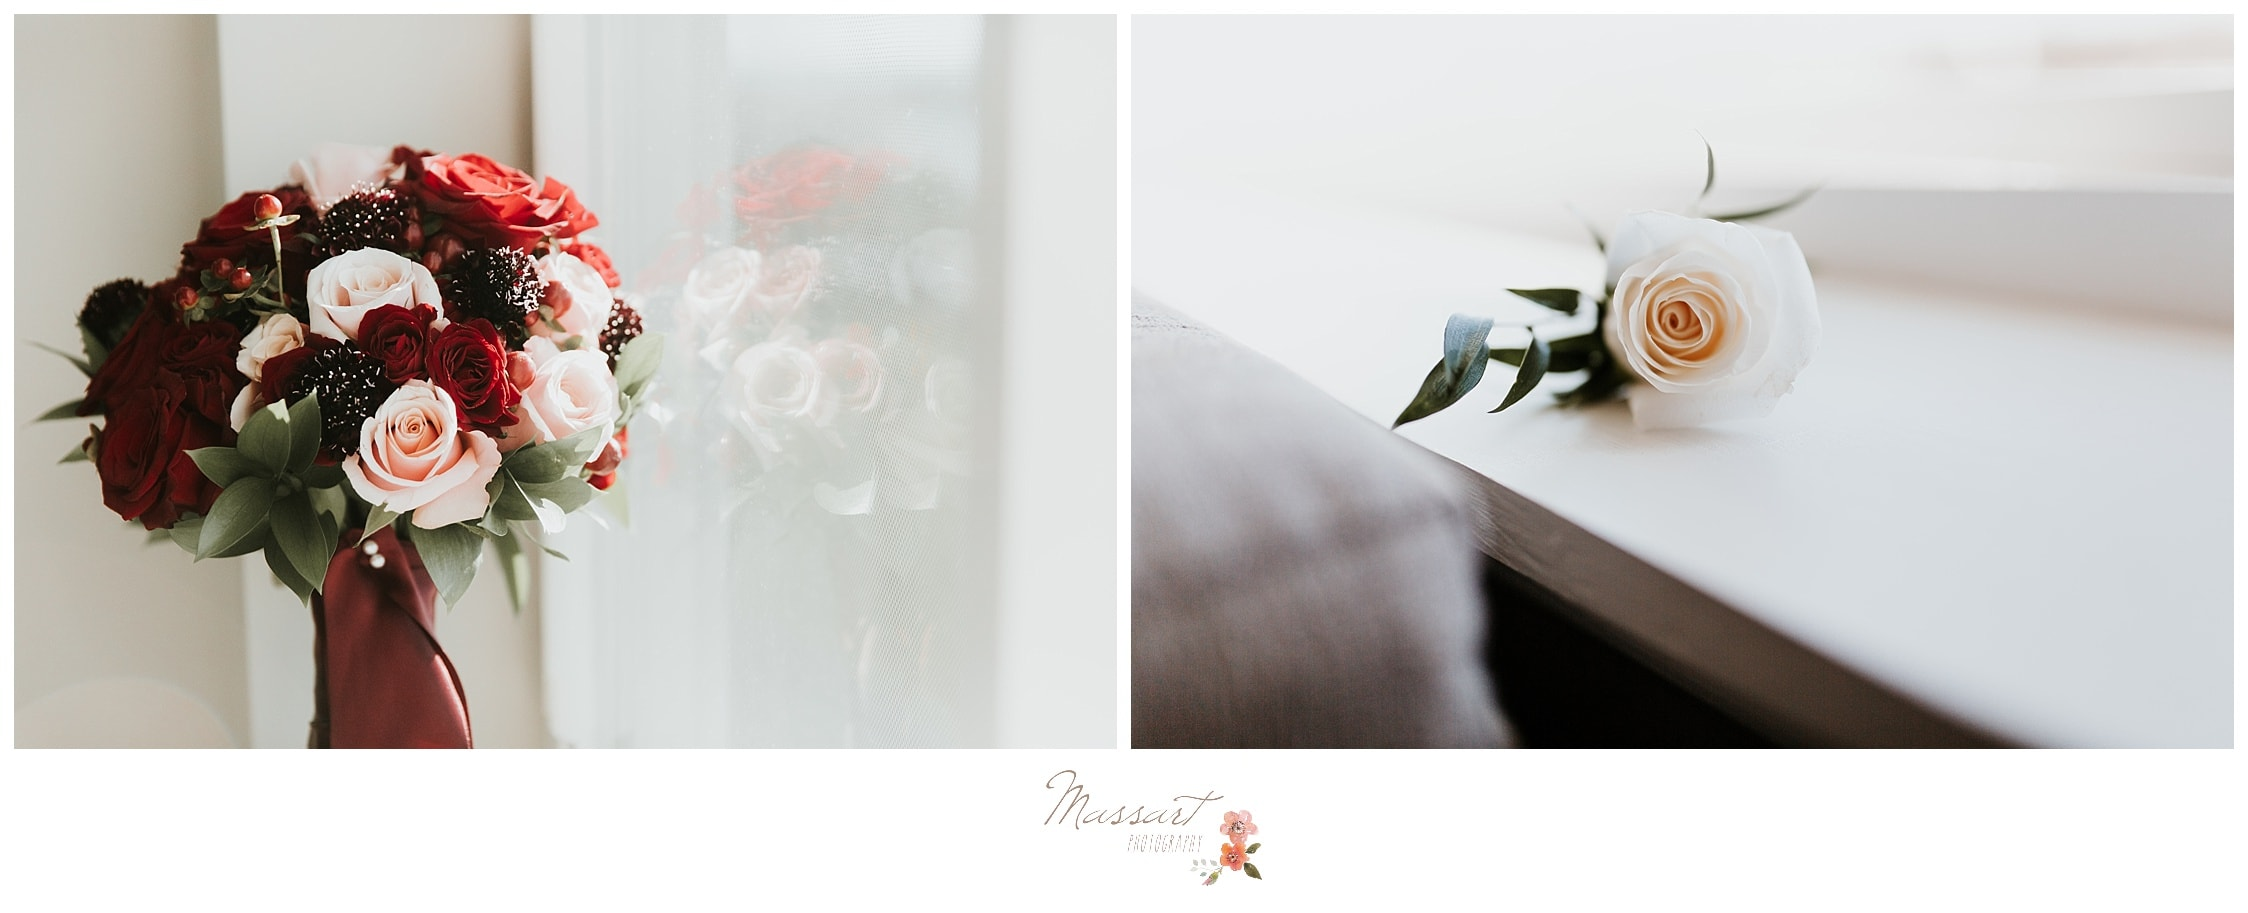 The bride's bouquet sitting by the windowsill photographed by Massart Photography RI